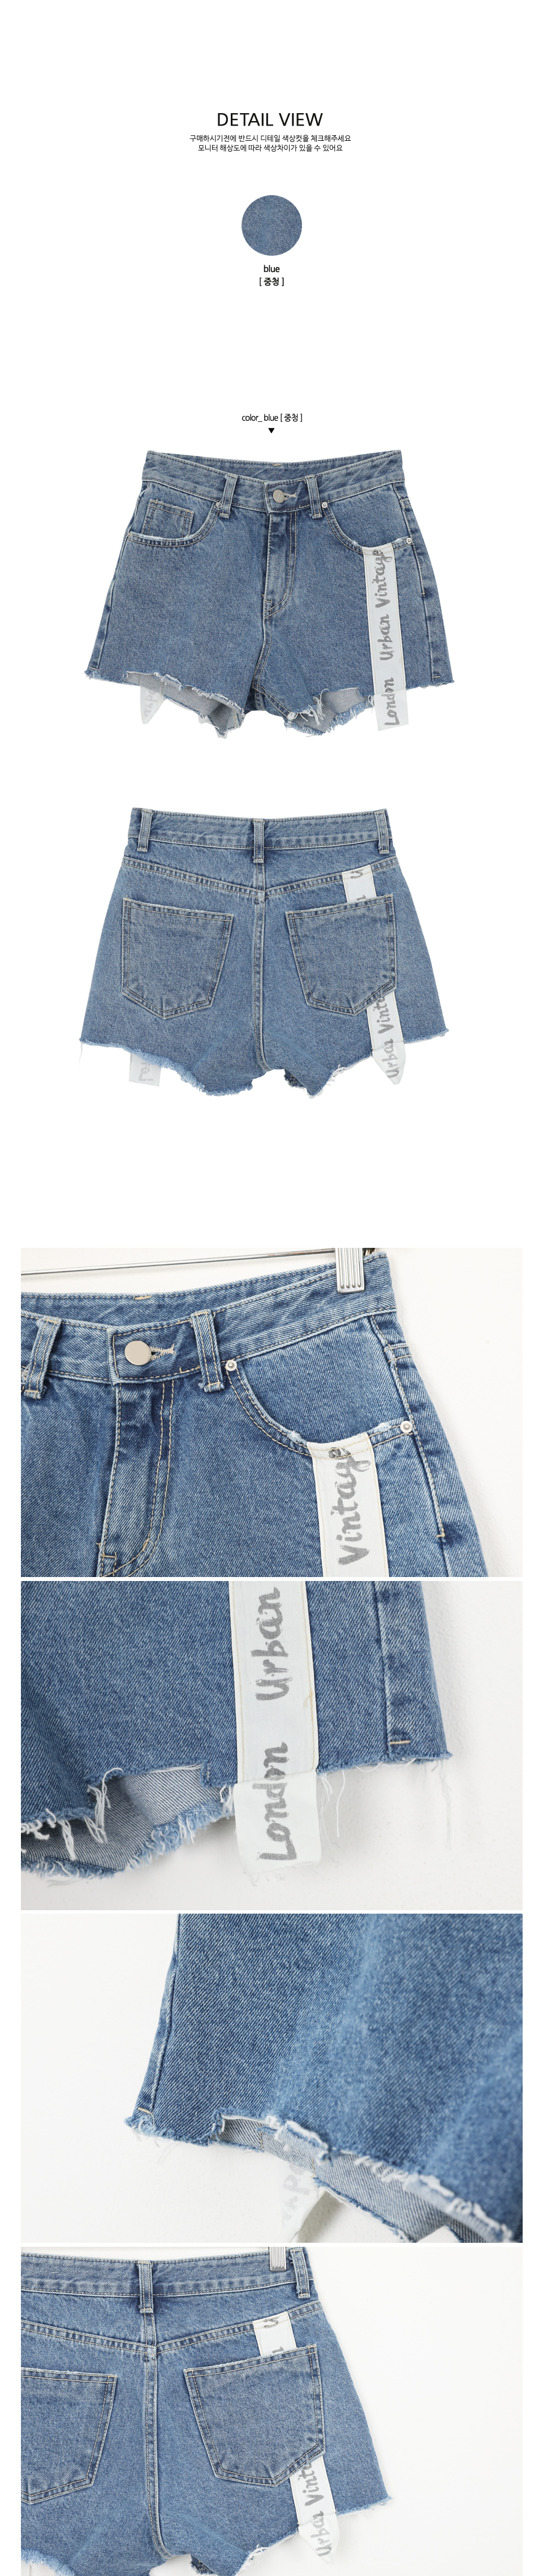 Special label hot pants